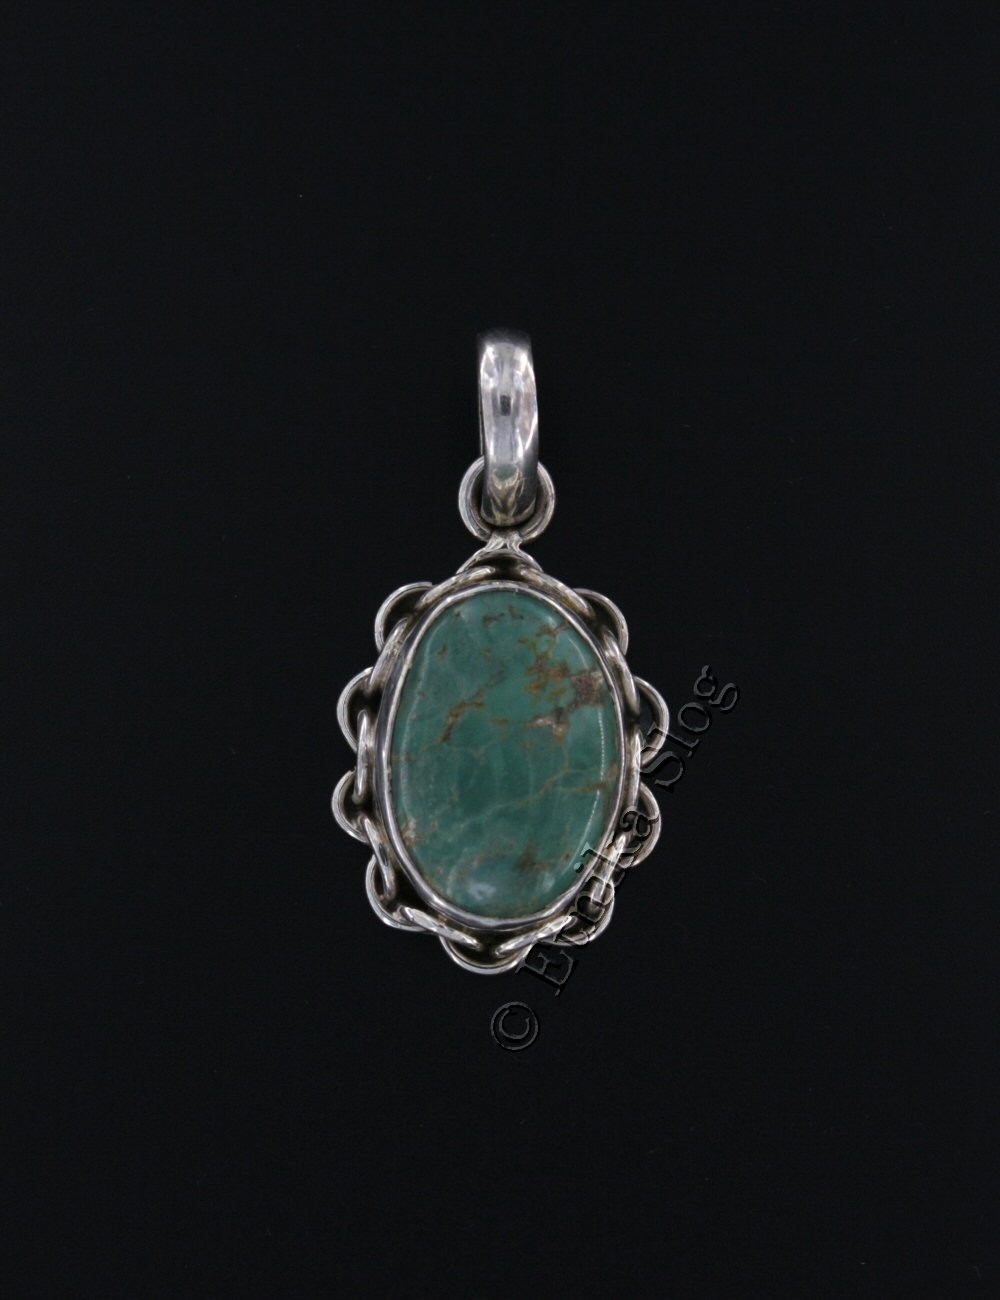 SILVER AND STONE PENDANTS ARG-PP600-03 - Oriente Import S.r.l.